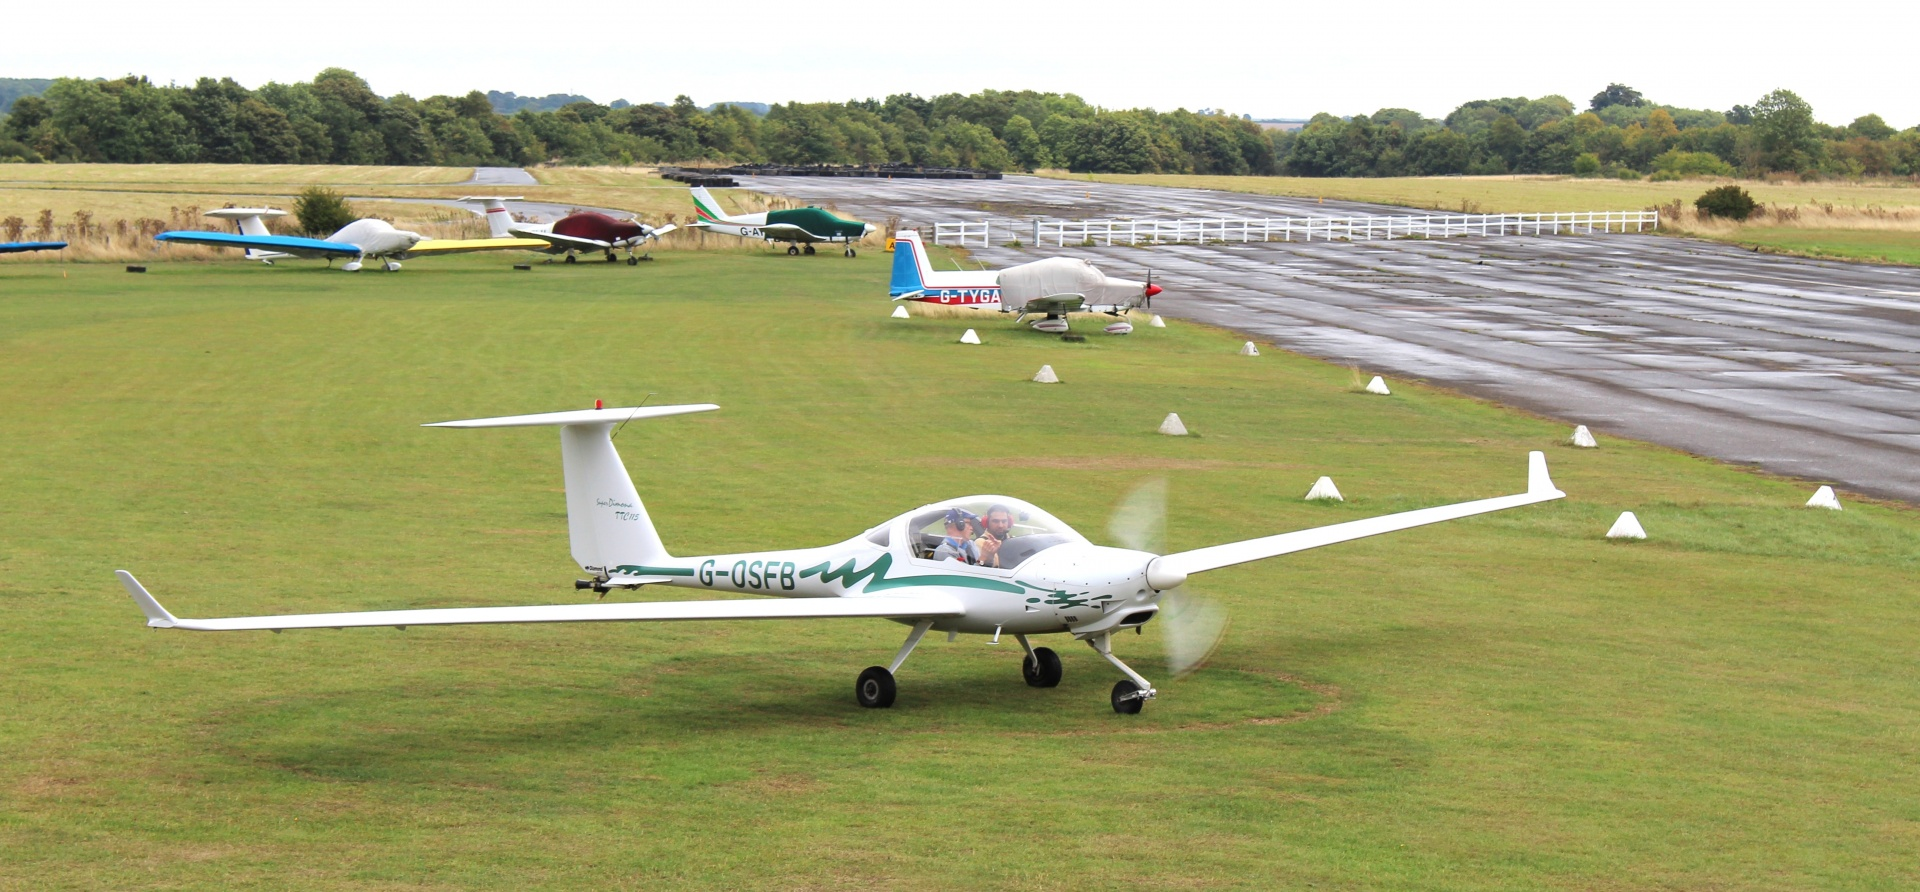 30 Minute Motor Glider Trial Flight In Oxfordshire